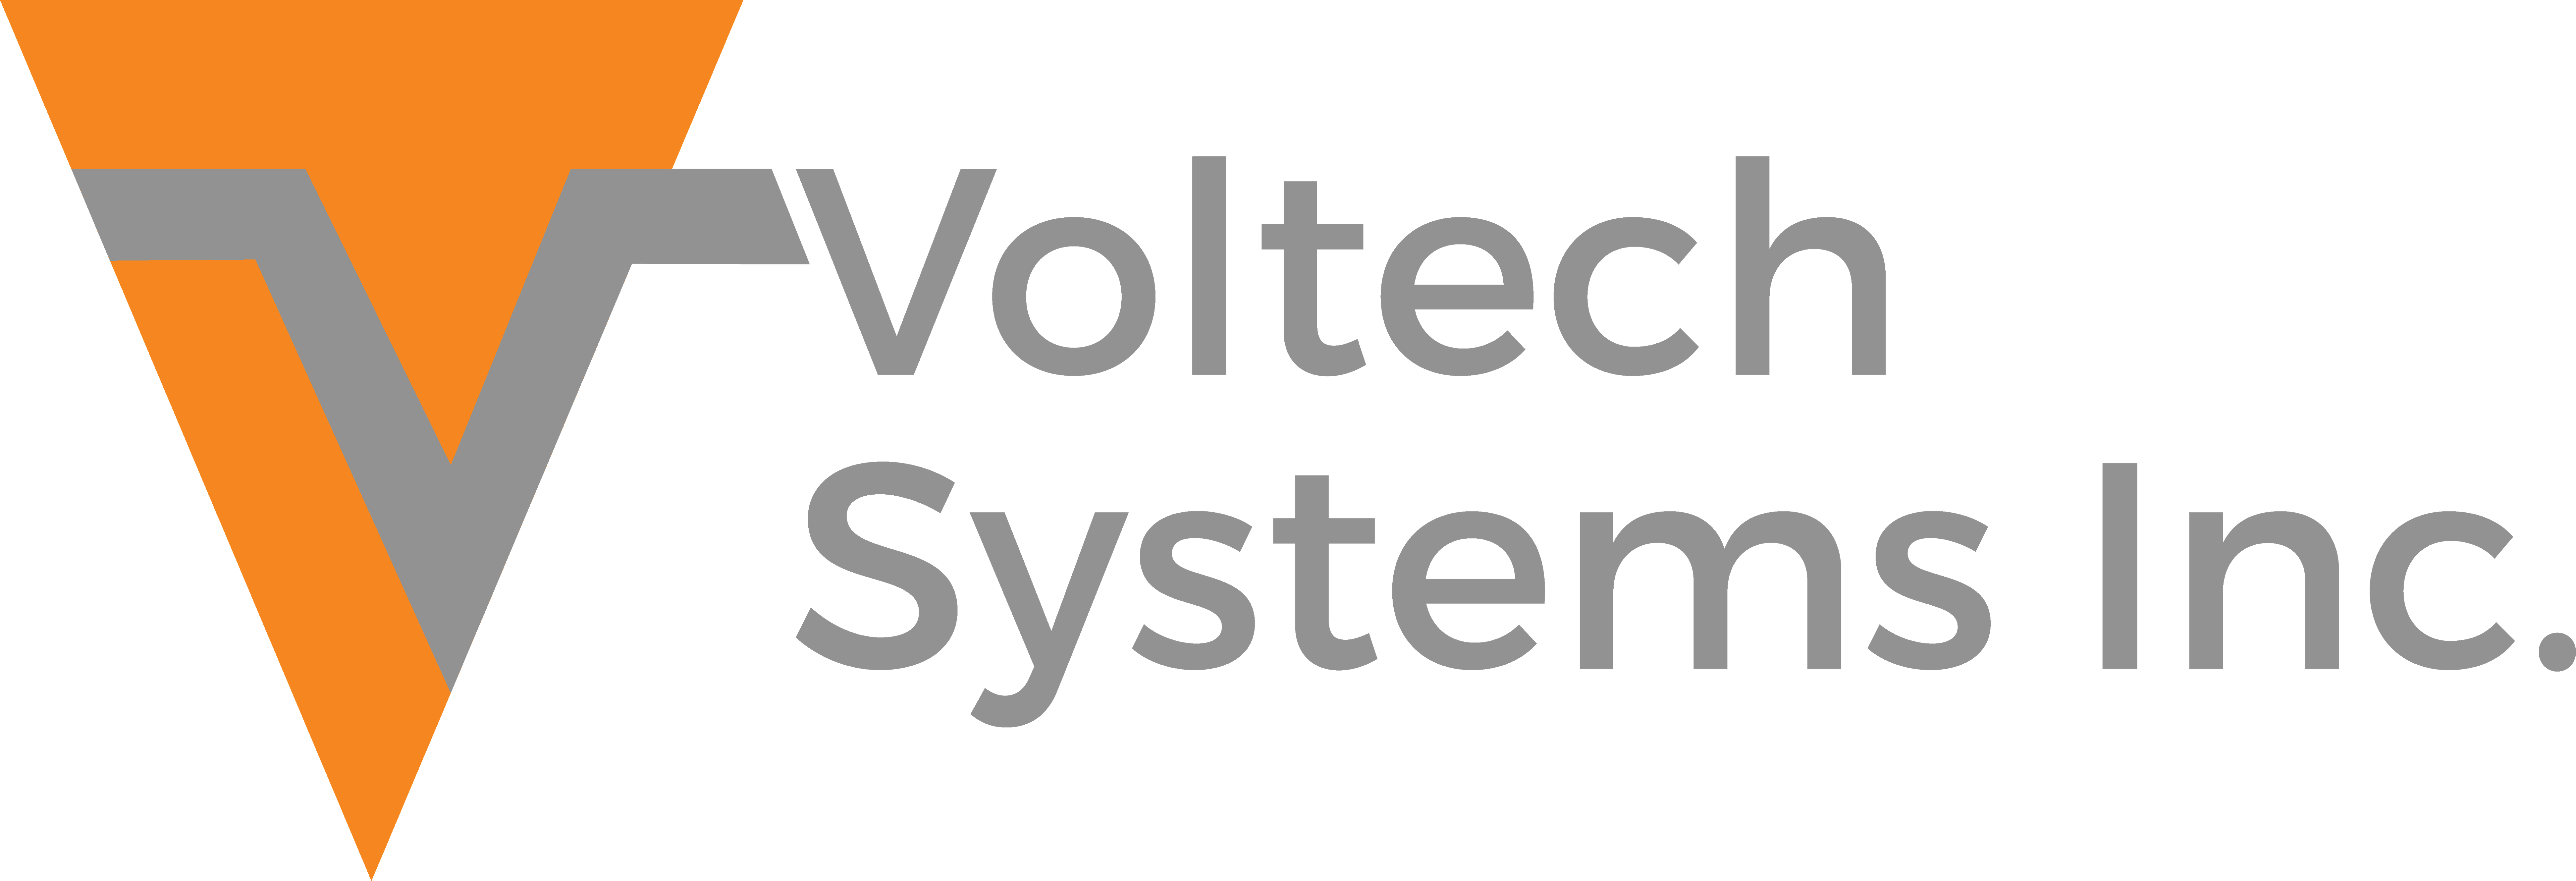 Voltech Systems